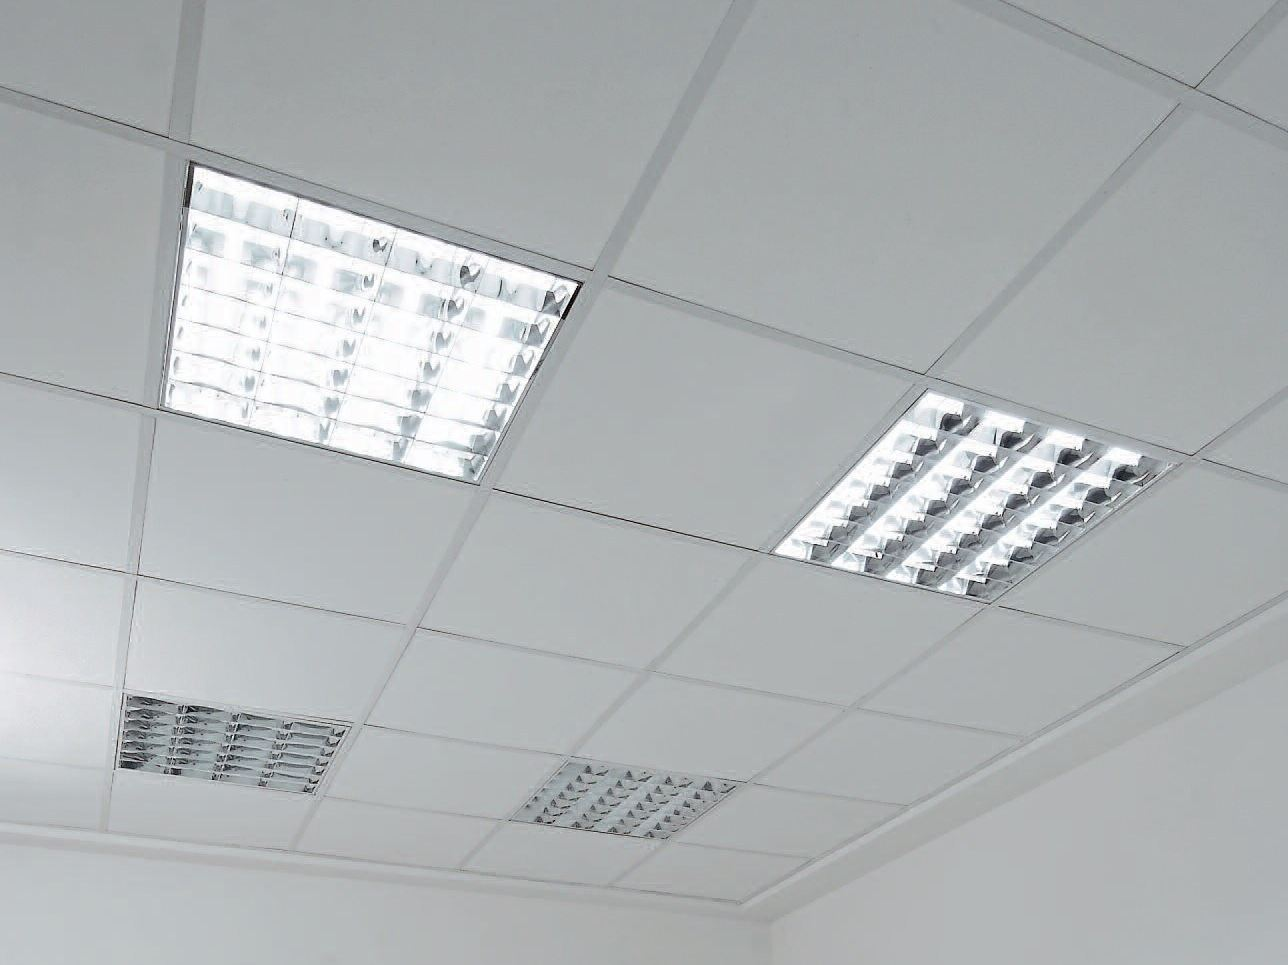 Mineral fibre ceiling tiles for healthcare facilities purezza mineral fibre ceiling tiles for healthcare facilities purezza igiene superfici by knauf amf dailygadgetfo Image collections